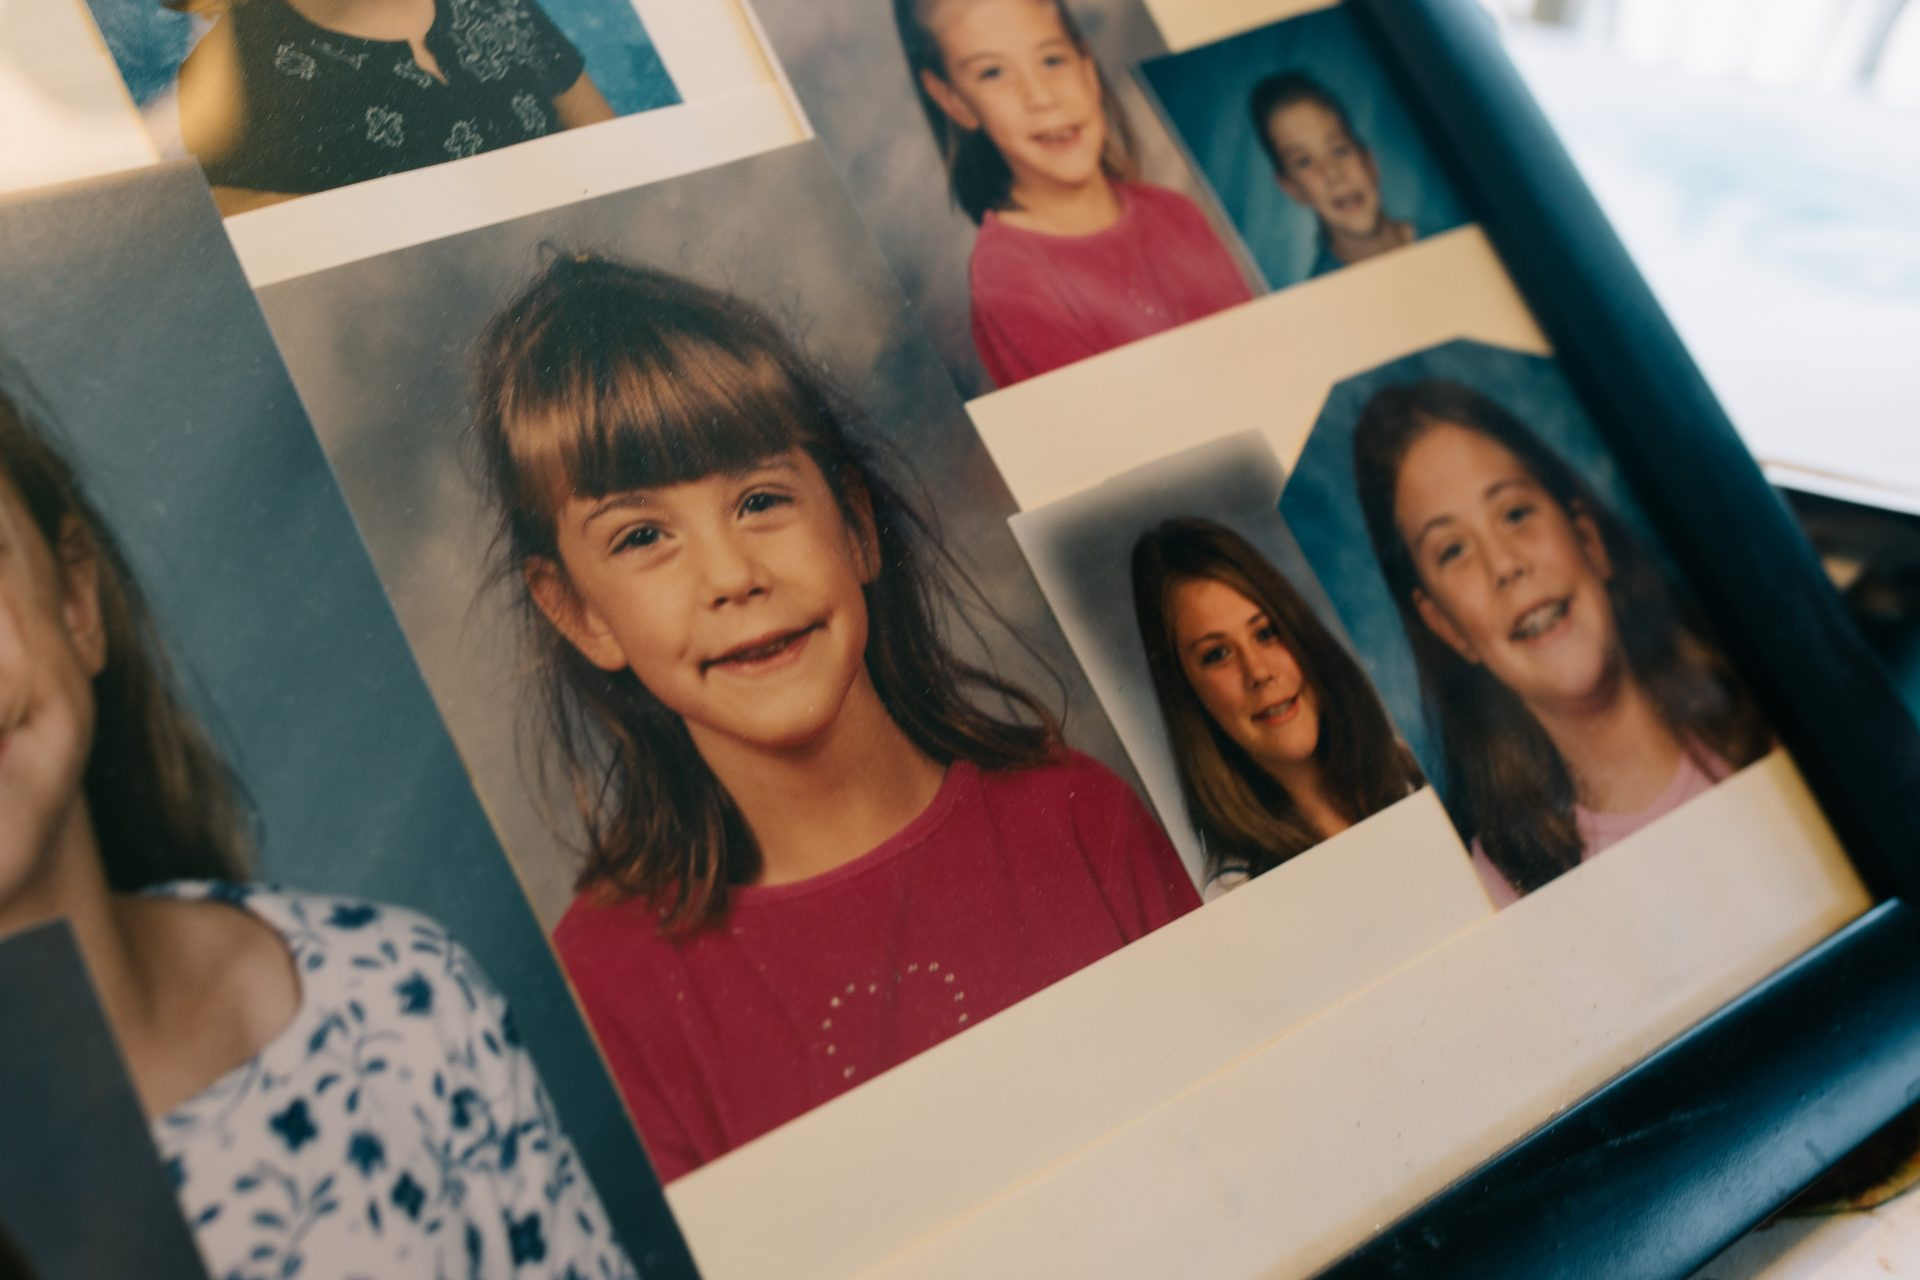 Photos of Kimberly Stringer throughout her childhood are displayed in the Stringer family's home in Morrisville, Pa., on Aug. 7, 2020.